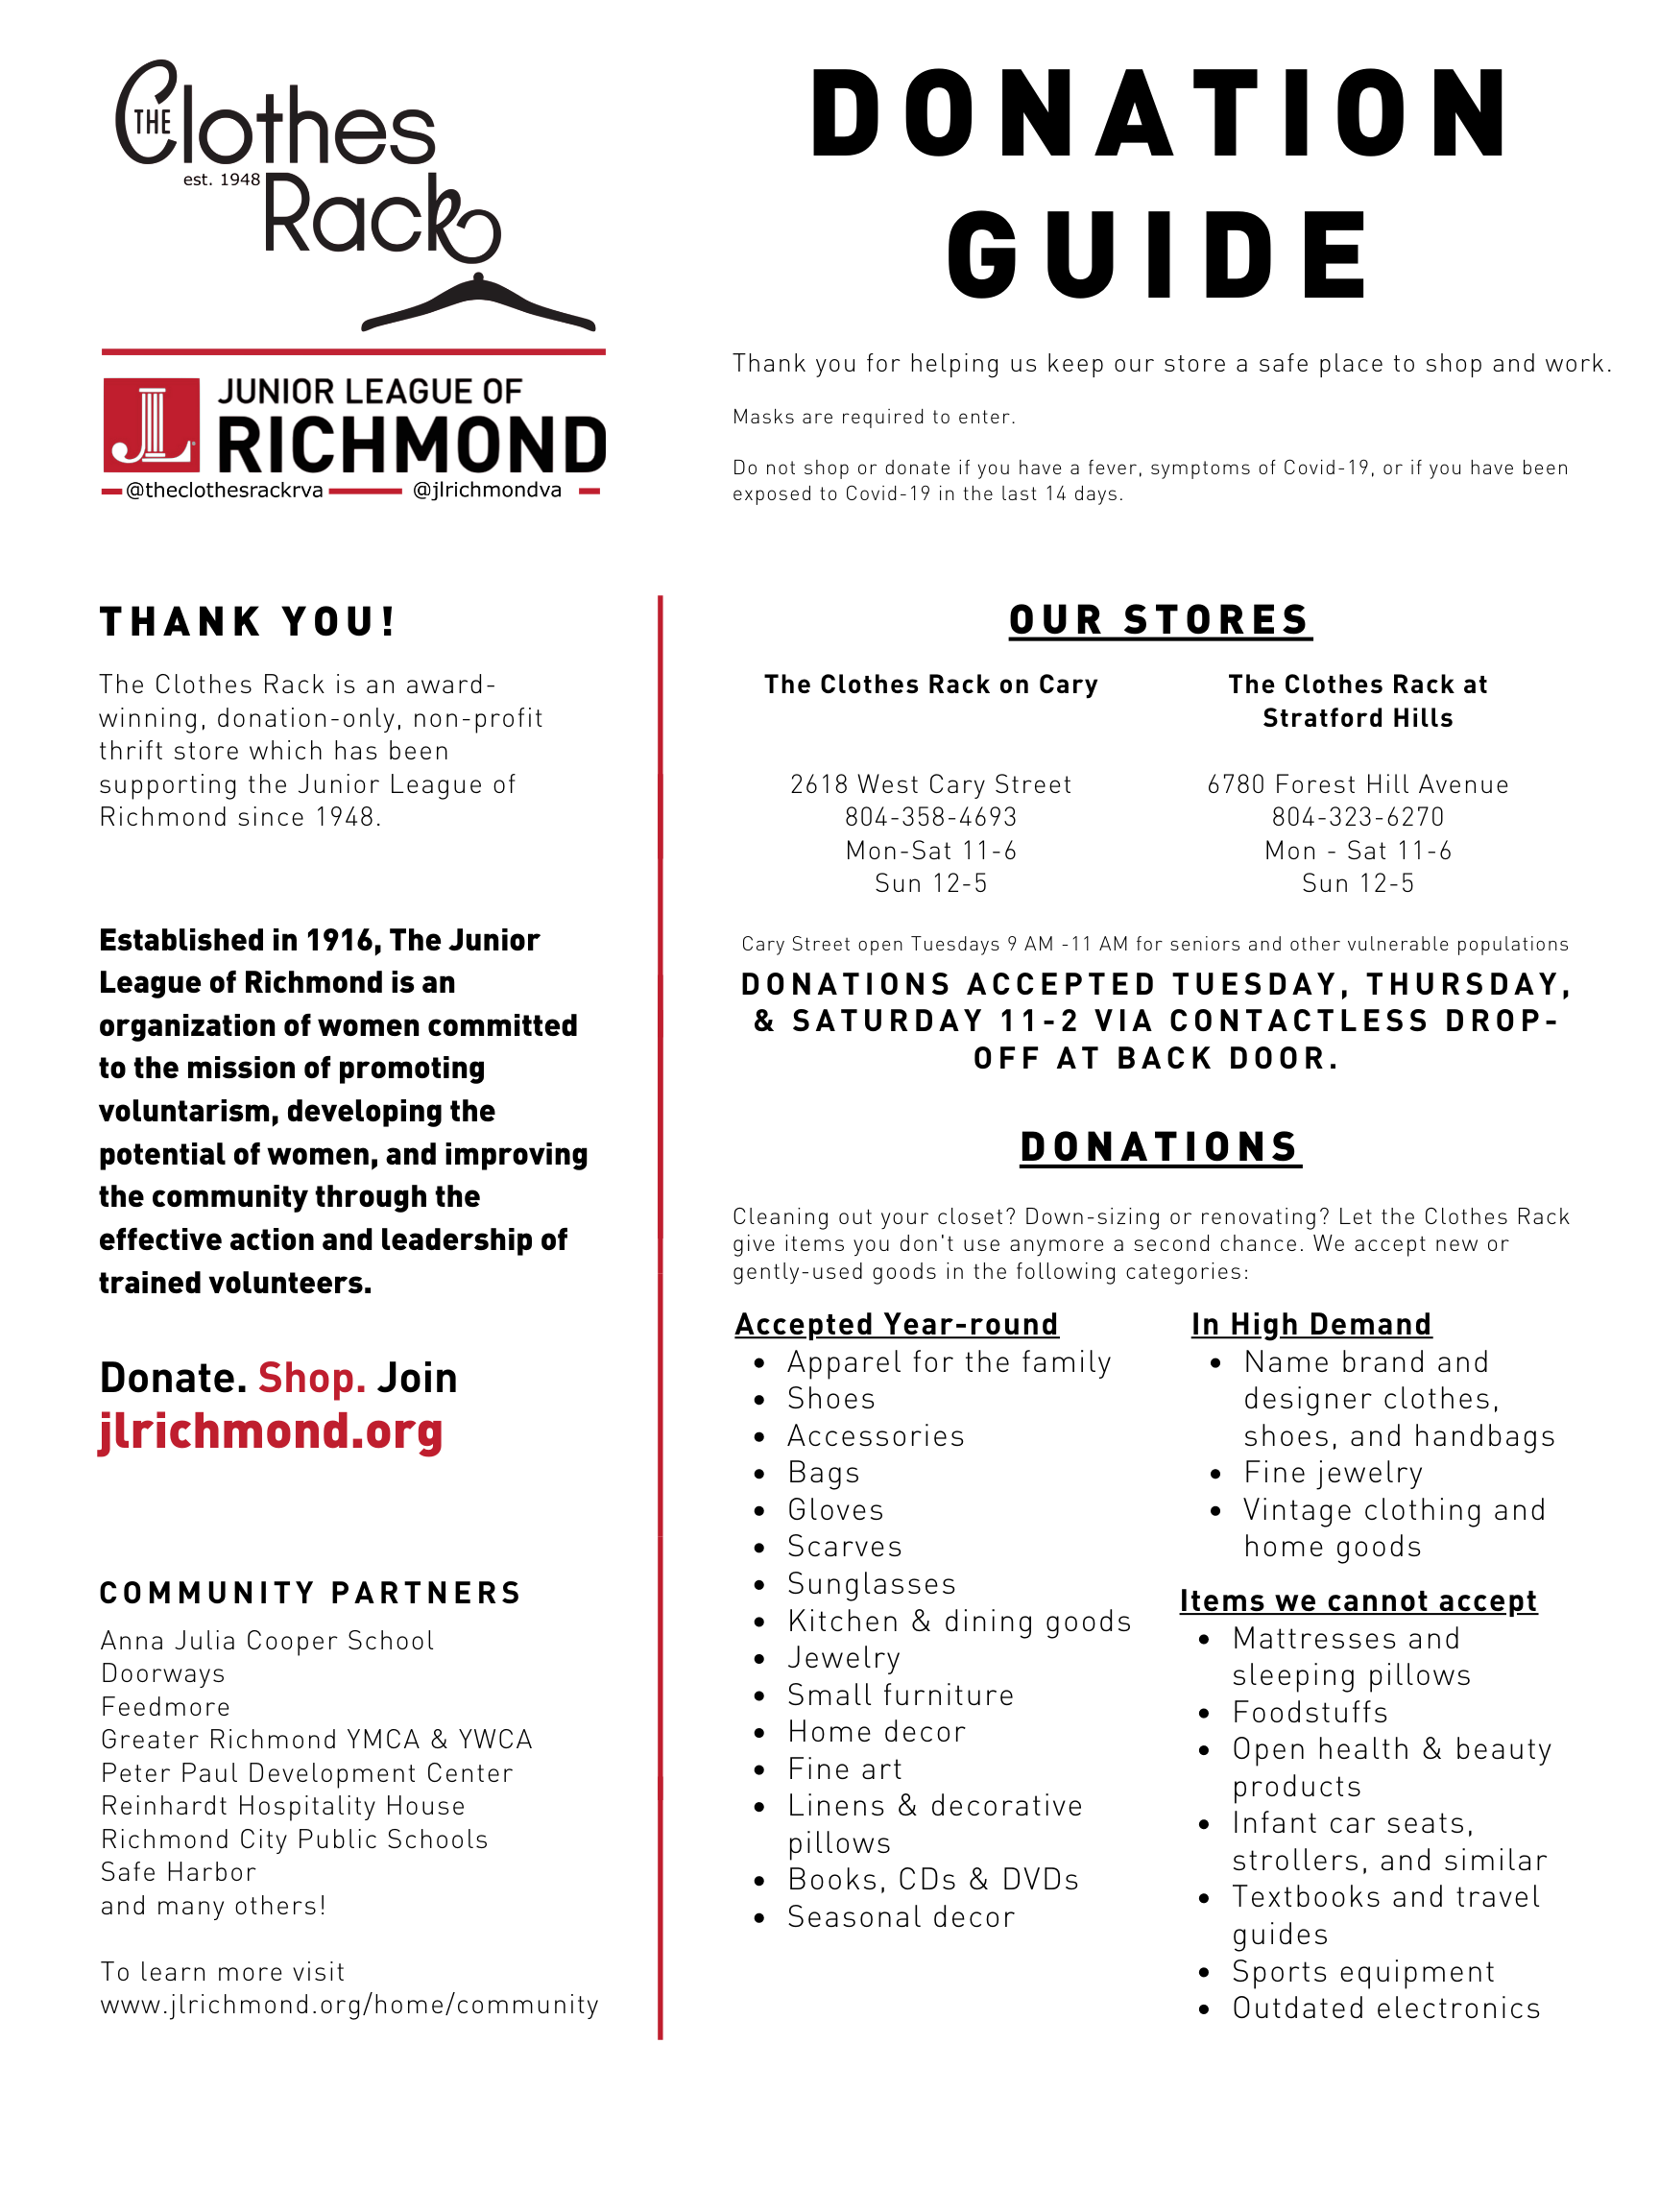 descriptions of items one may donate to the Clothes Rack Stores and store hours and location information